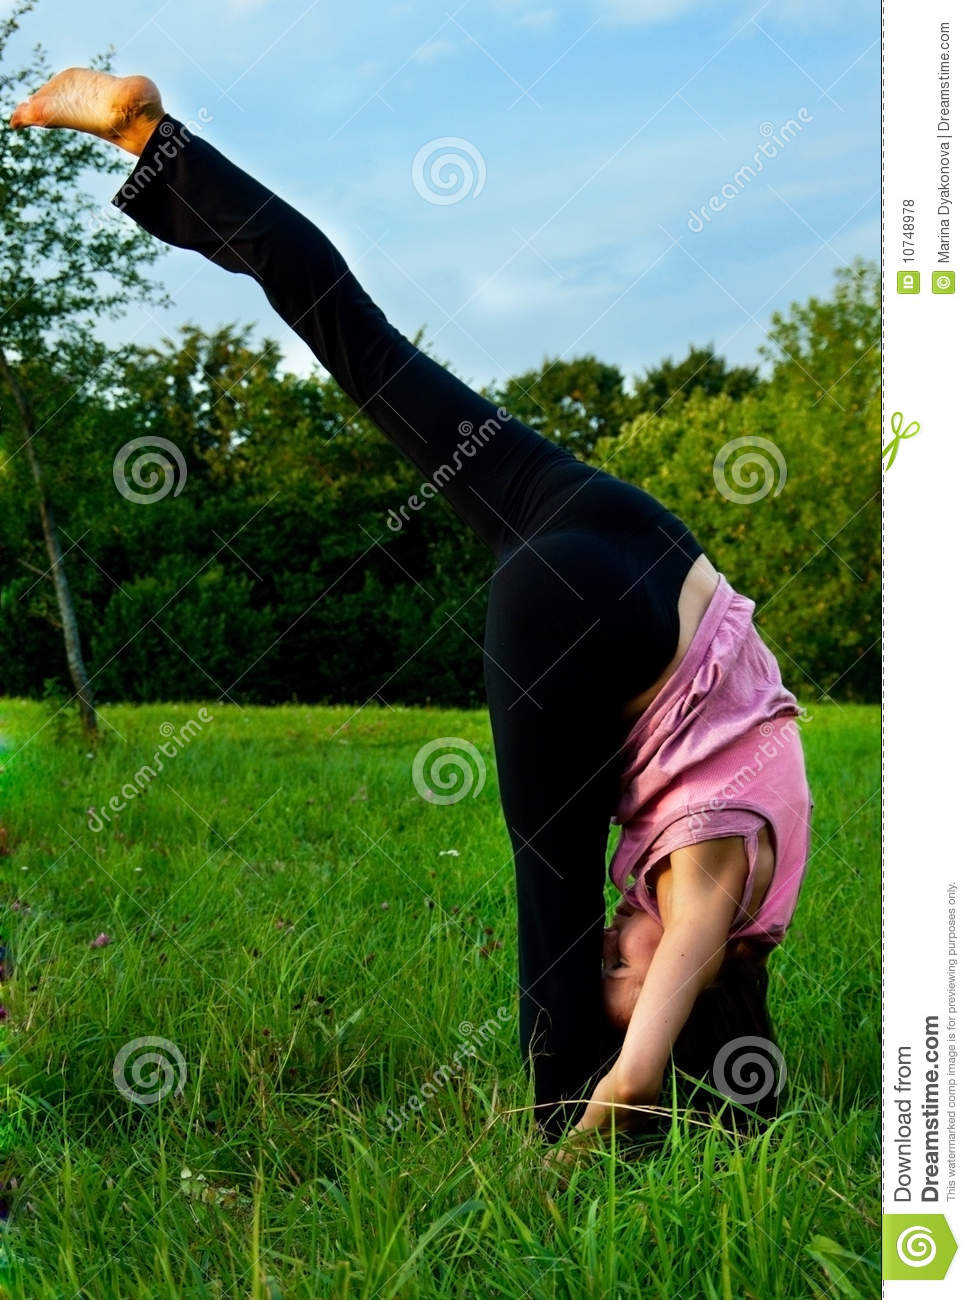 Yoga in nature stock photo. Image of enjoy, field, freedom ...